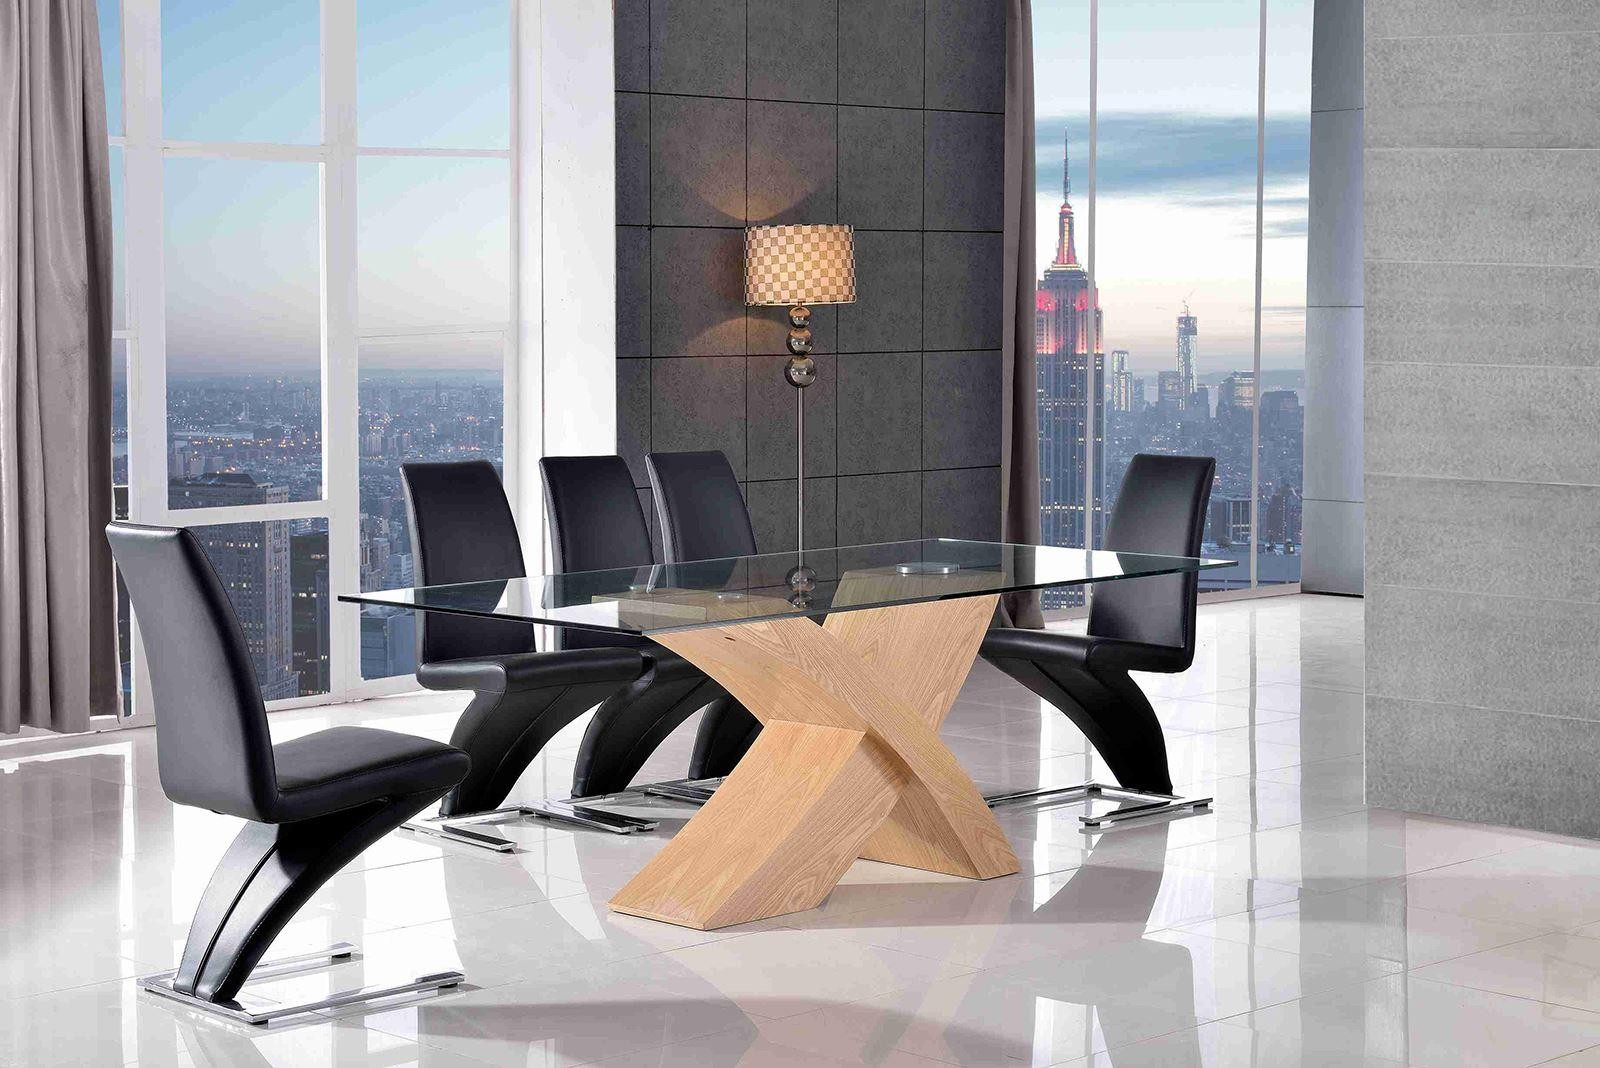 Valencia Black 200cm Wood and Glass Dining Table with 8 Zed Designer Dining Chairs [Black]